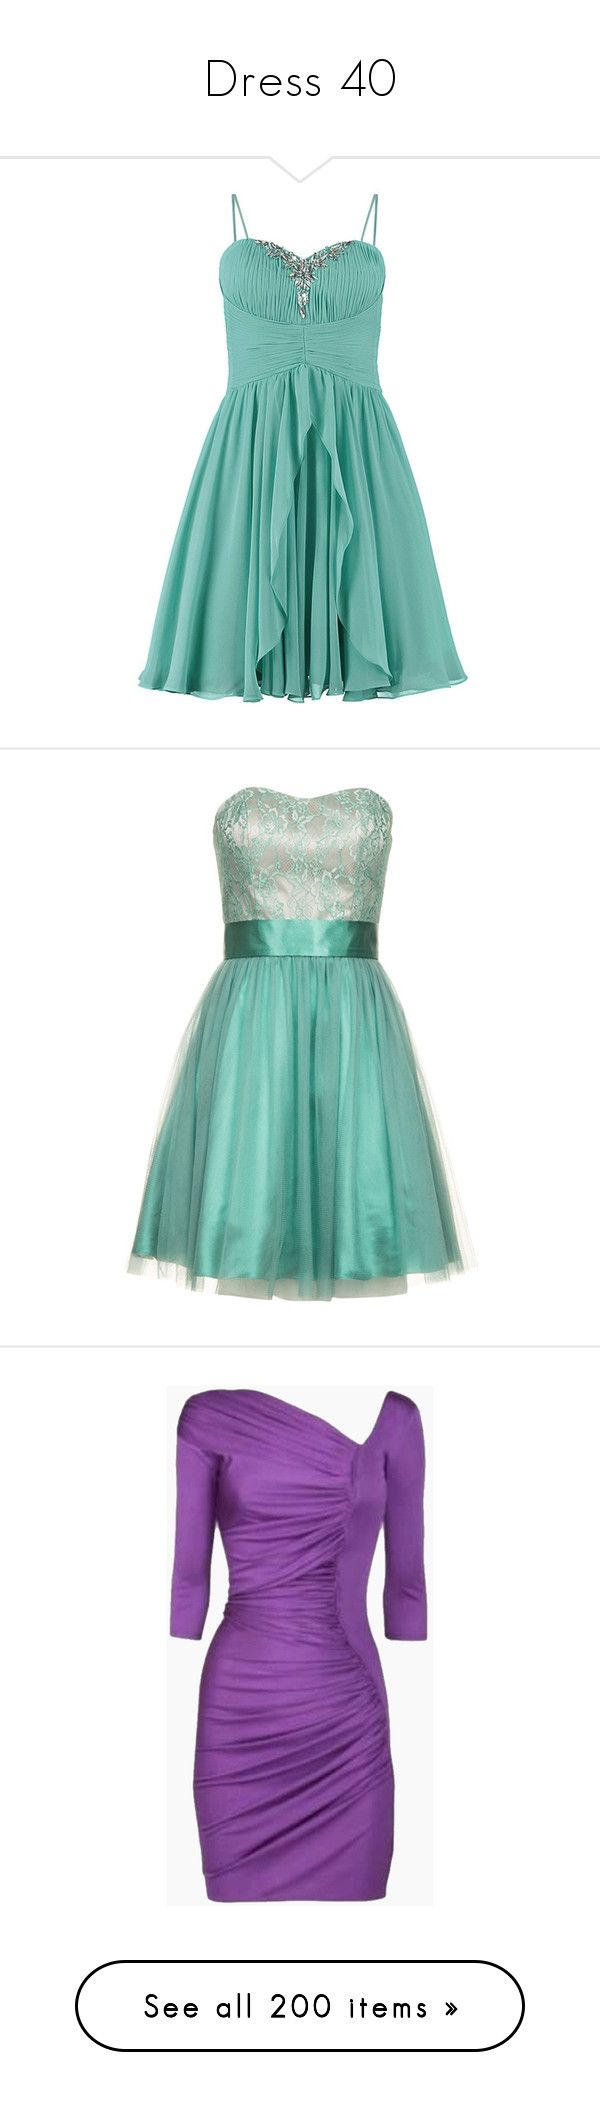 """""""Dress 40"""" by gleeforever95 ❤ liked on Polyvore featuring dresses, short dresses, vestidos, mint, spaghetti strap mini dress, short green dress, short sleeve cocktail dresses, green cocktail dress, green bustier and blue"""